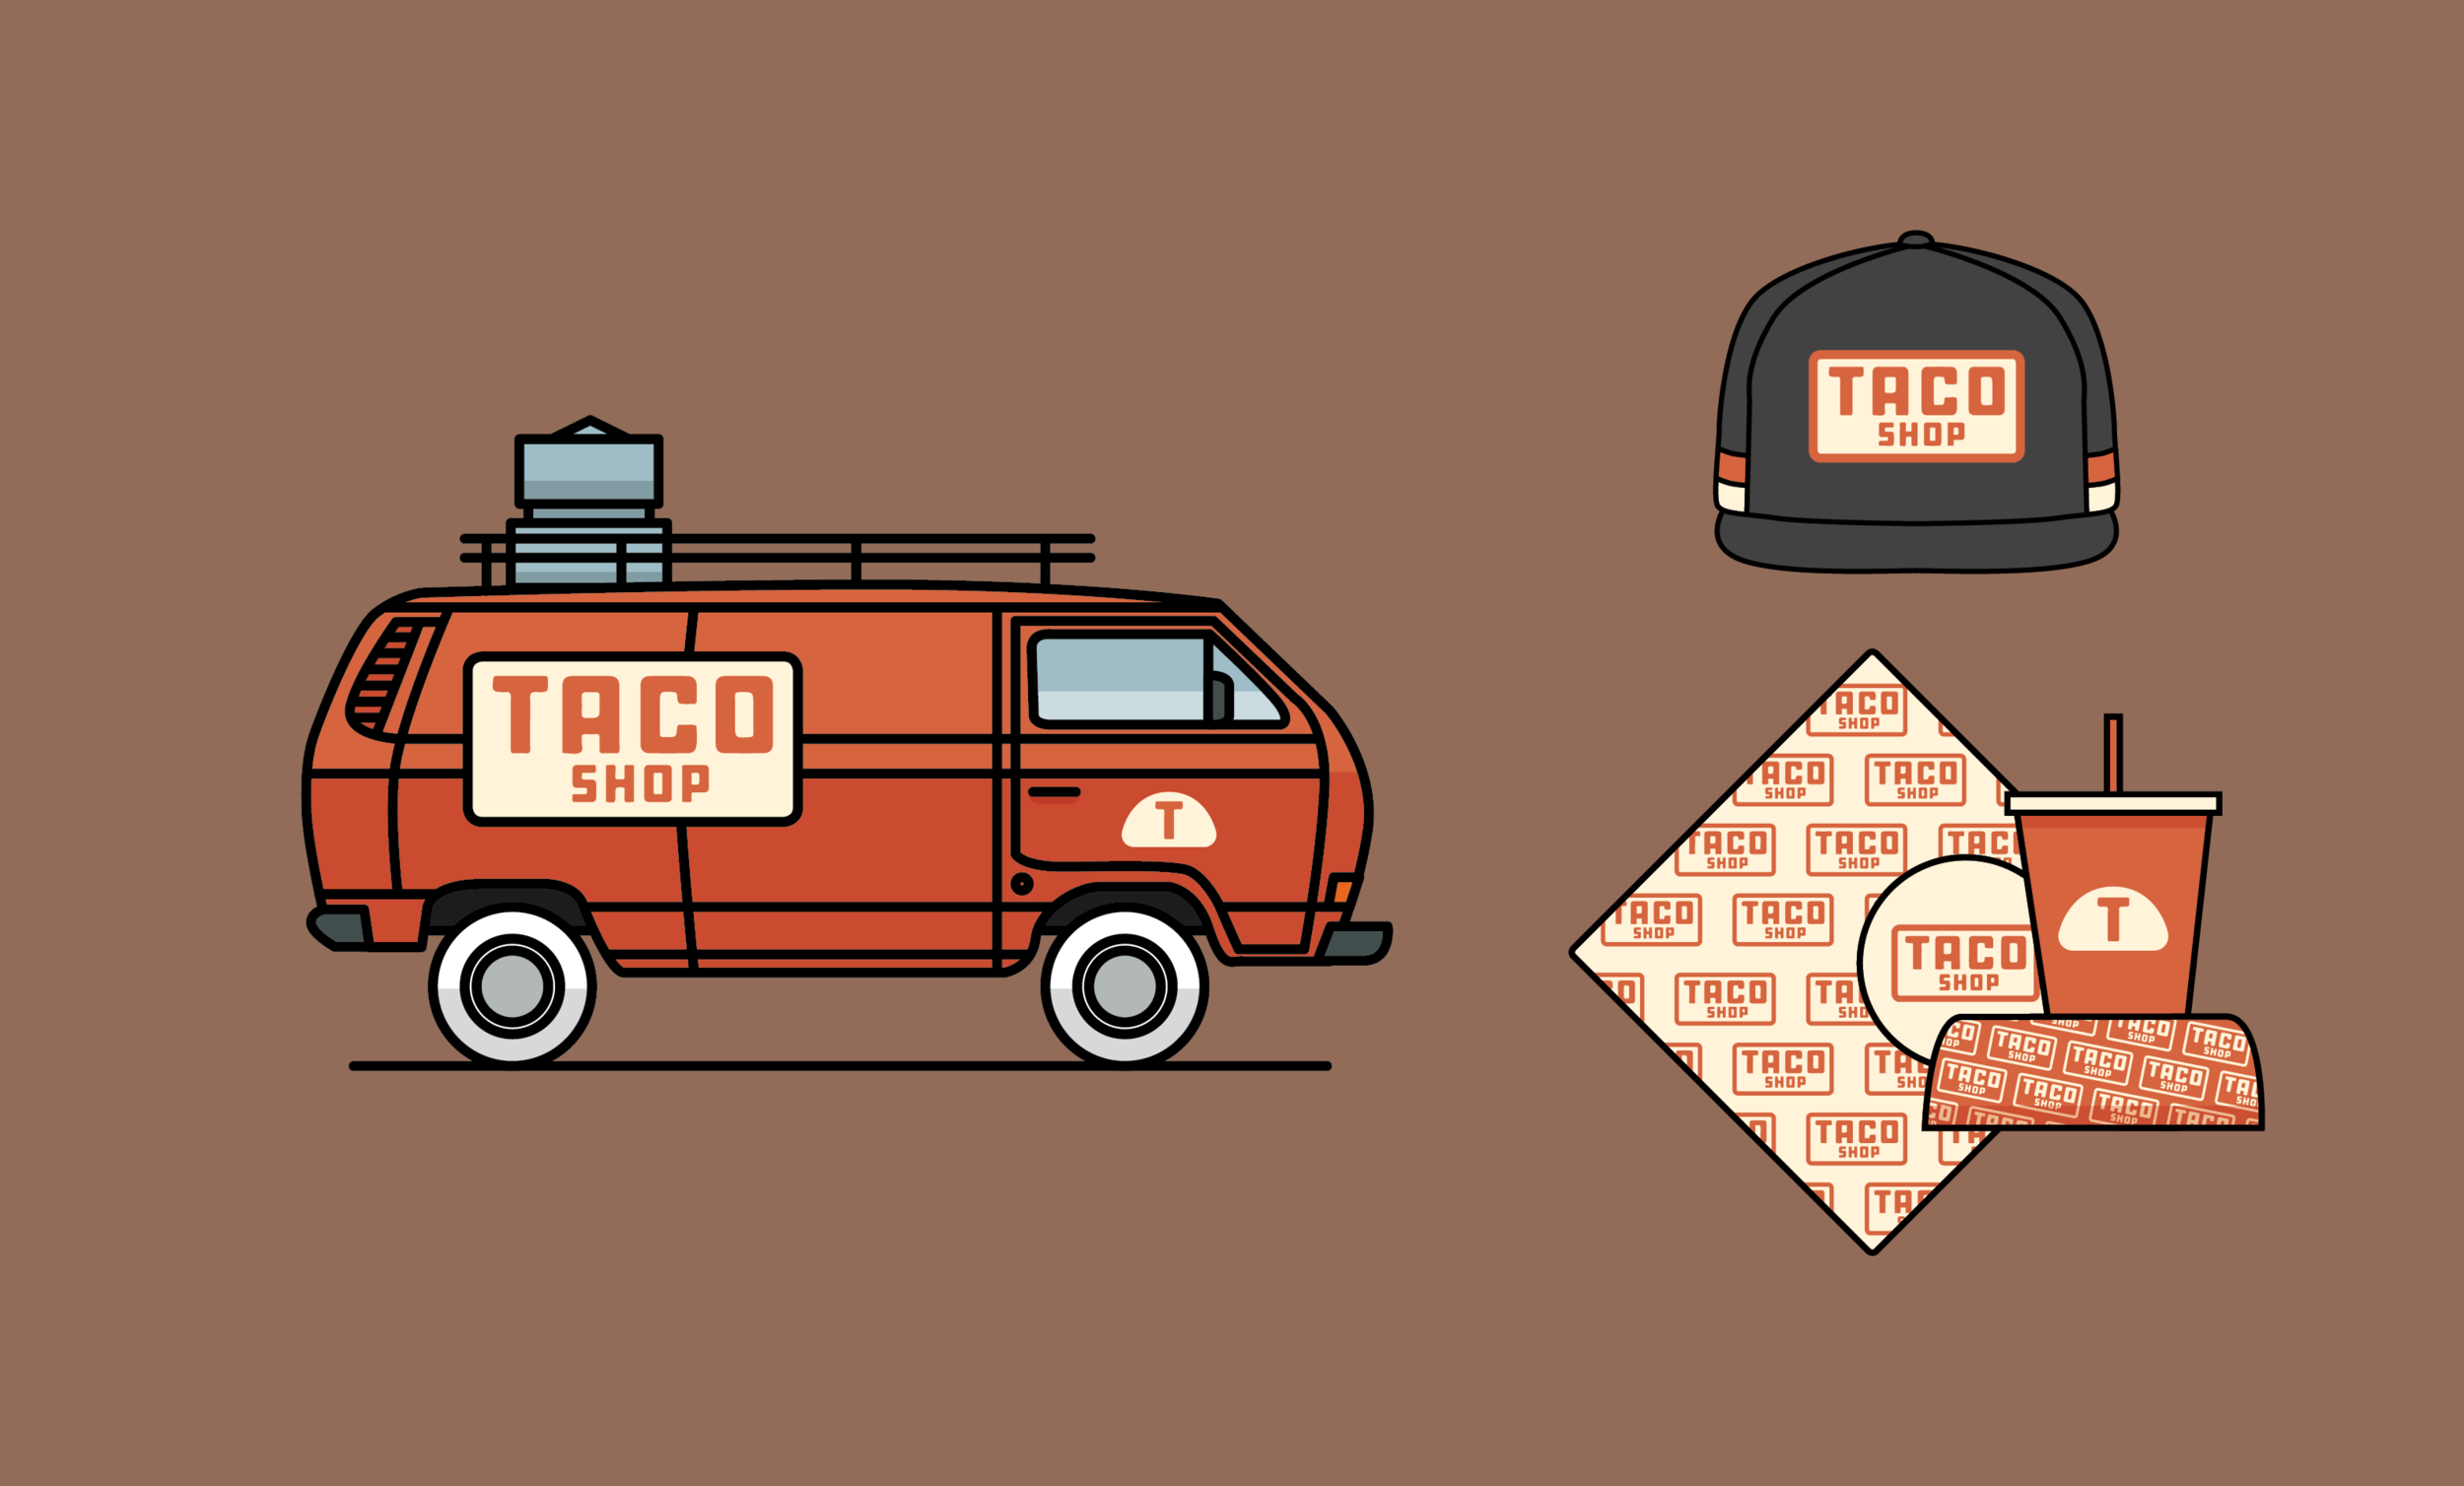 Blog-Aug-TacoShop.png